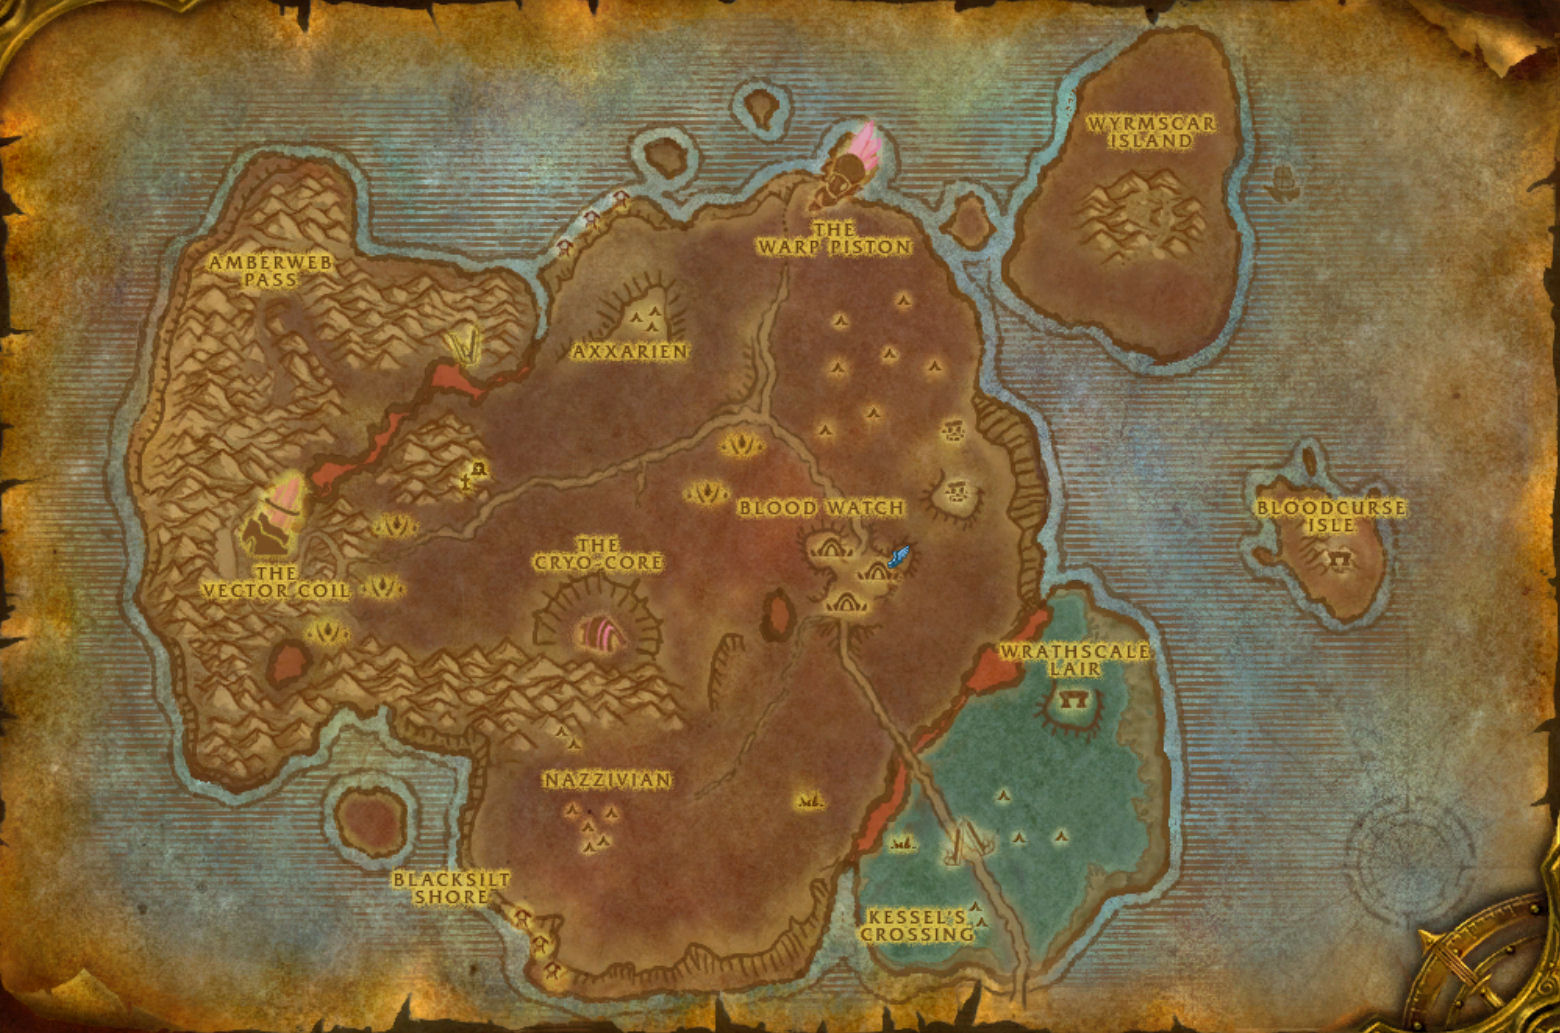 Bloodmyst isle the worst zone in wow the ancient gaming noob bloodmyst isle map gumiabroncs Gallery